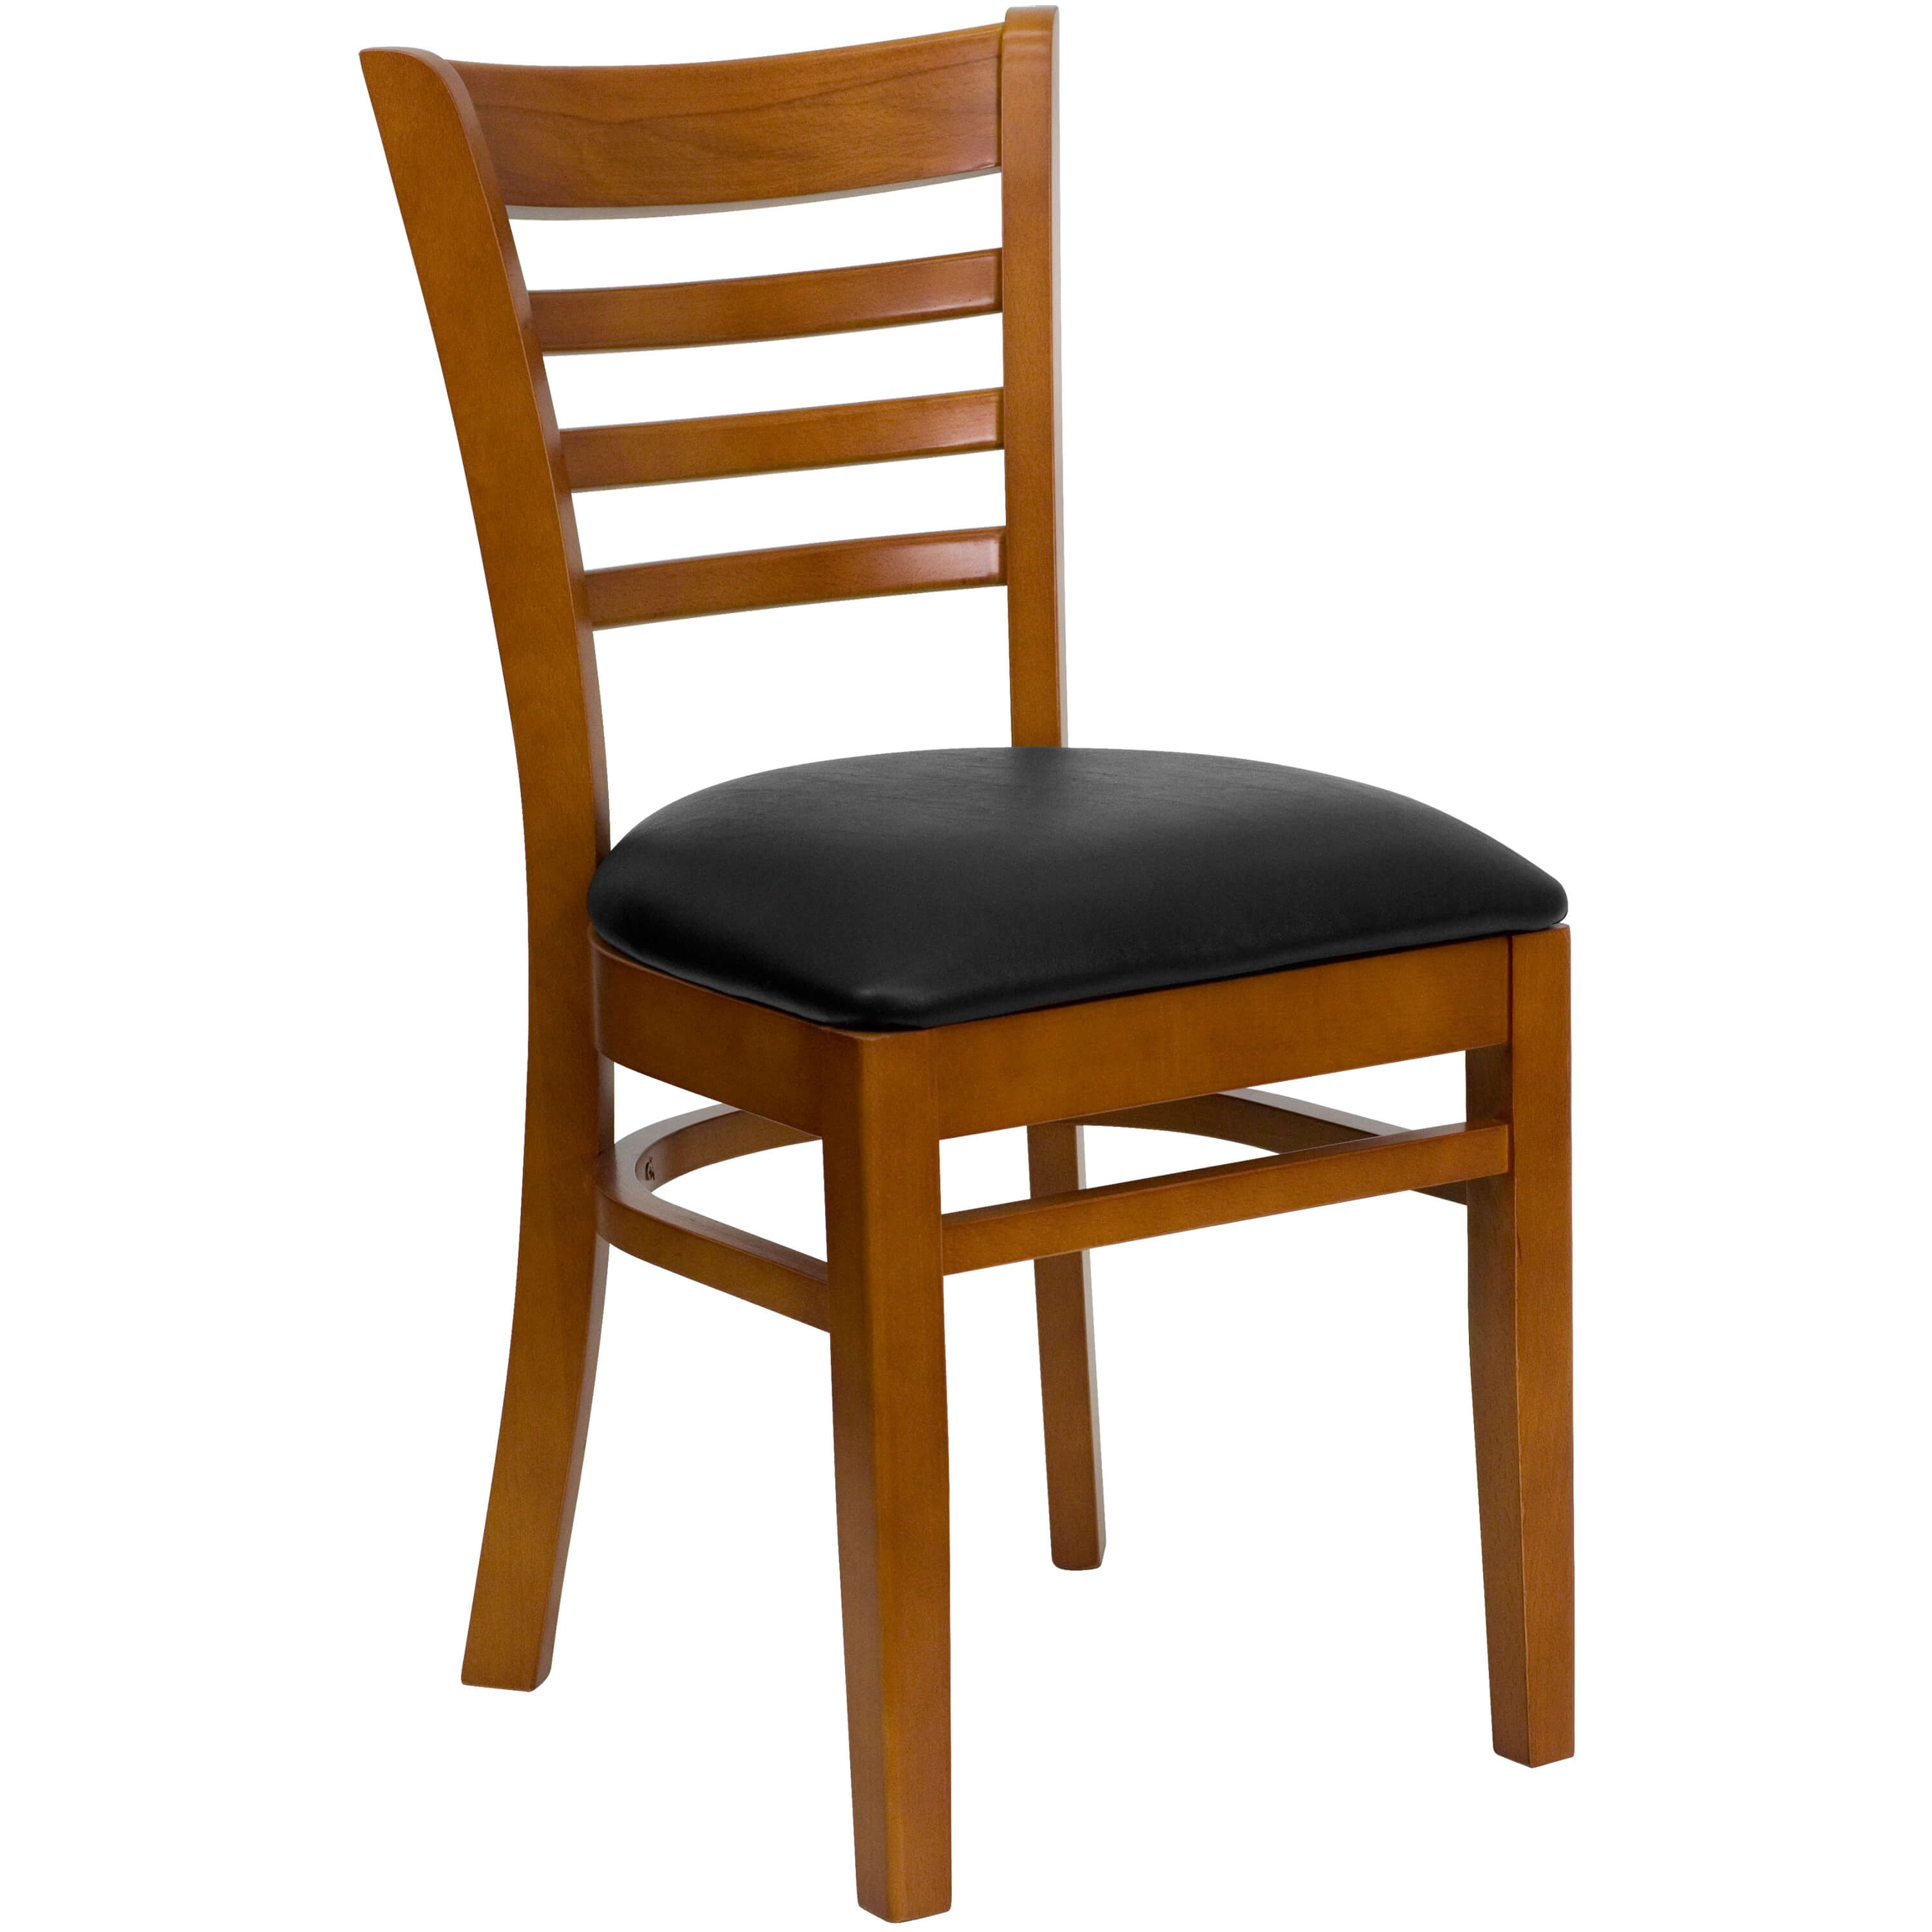 restaurant-tables-and-chairs-ladder-back-wooden-dining-chair.jpg